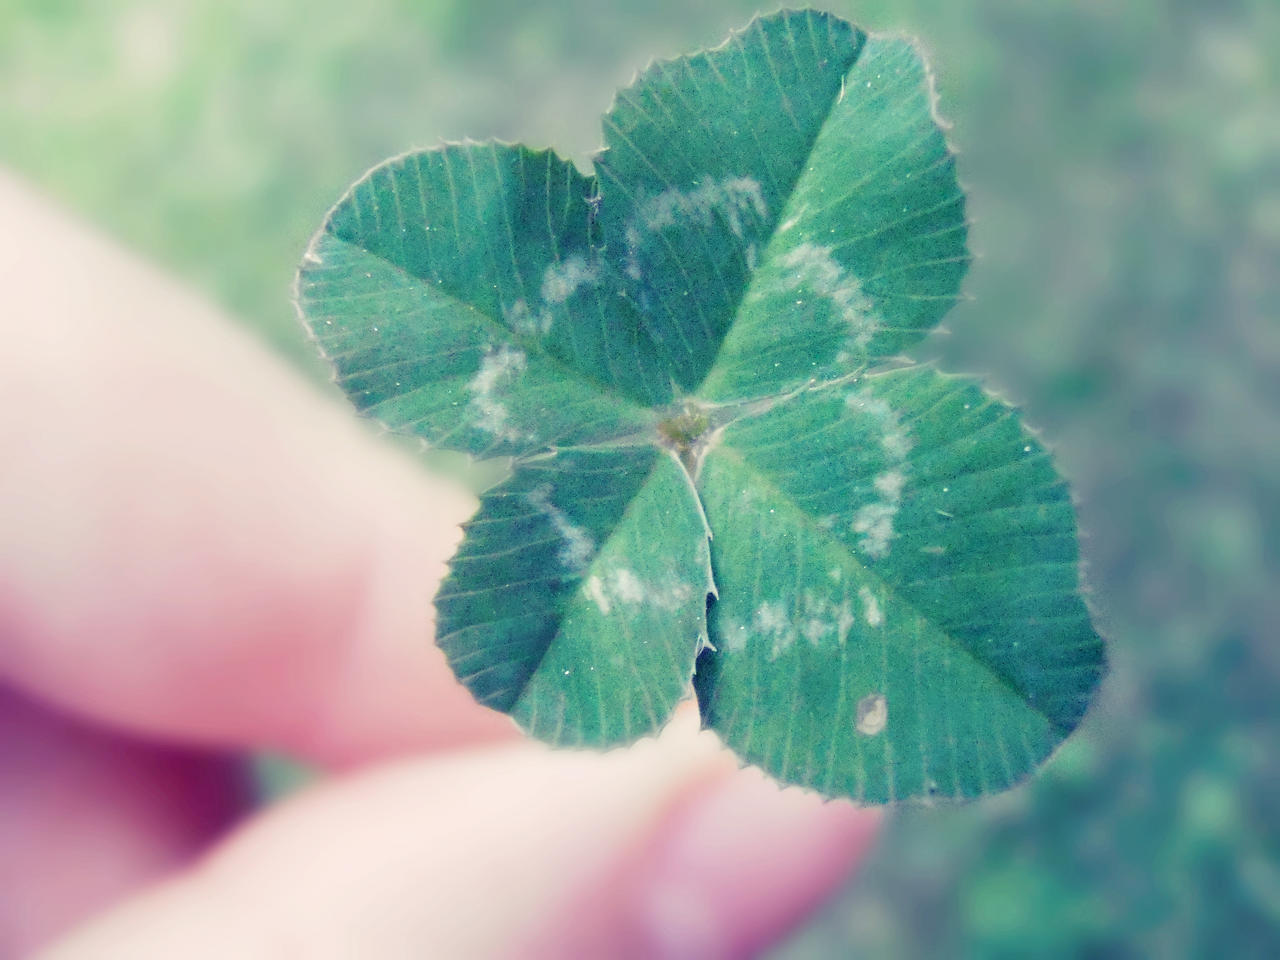 Four-Leaf Clover by Nikoleta036